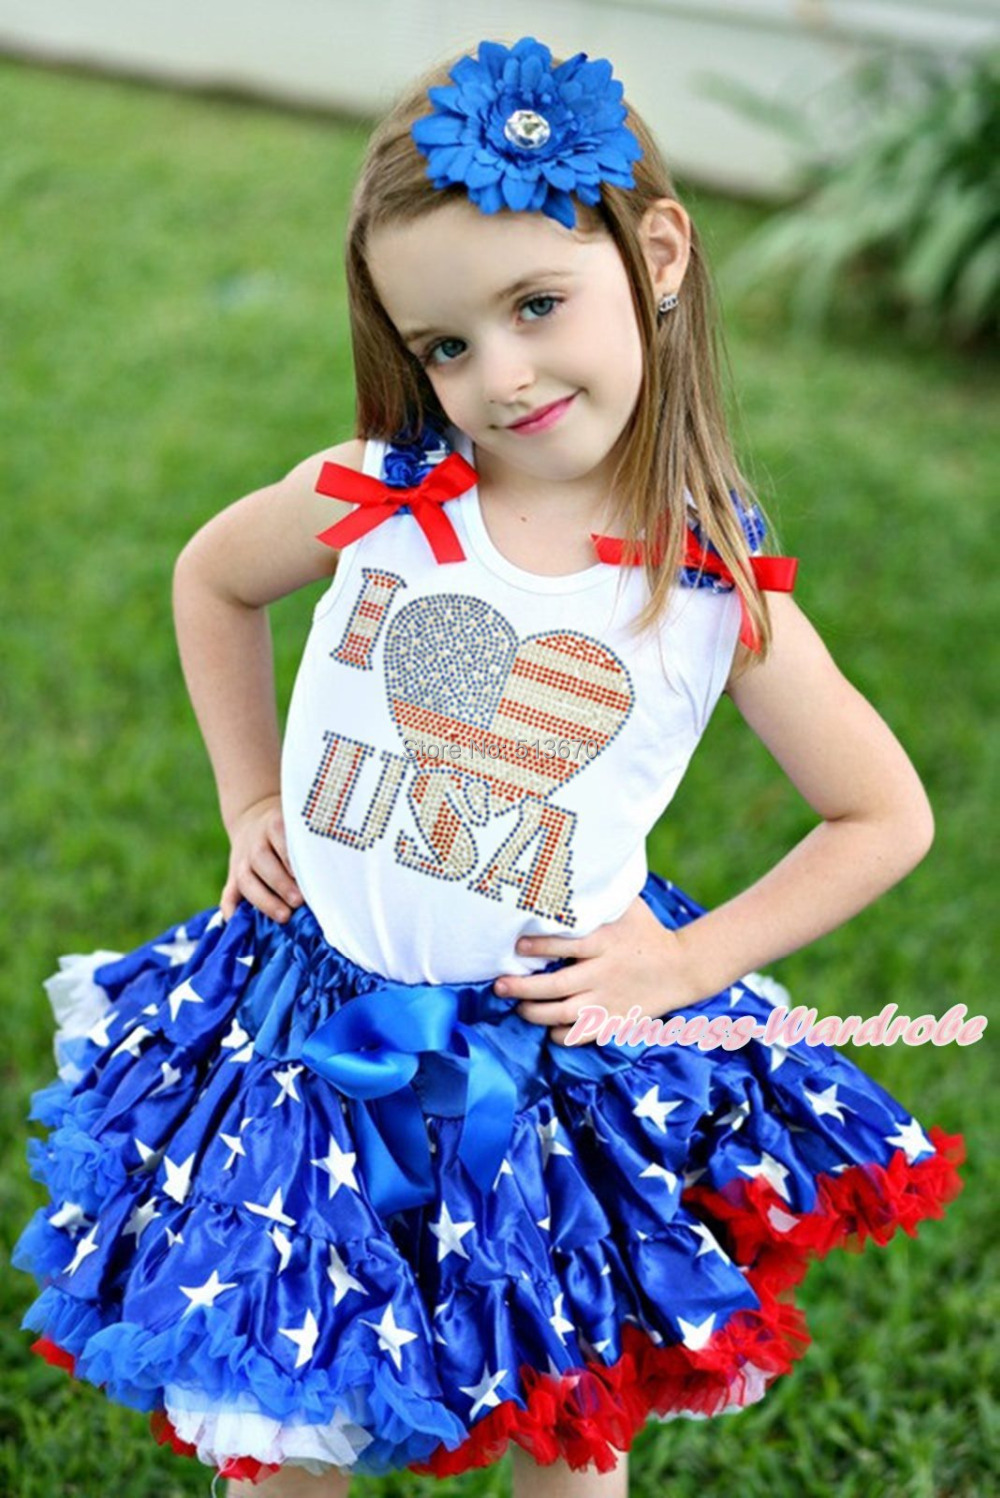 4th July Rhinestone I LOVE USA Top Patriotic Star Pettiskirt Girl Cloth Set 1-8Y MAPSA0590 new for toshiba portege z30 b1310 z30 b1320 13 3 laptop keyboard us backlight